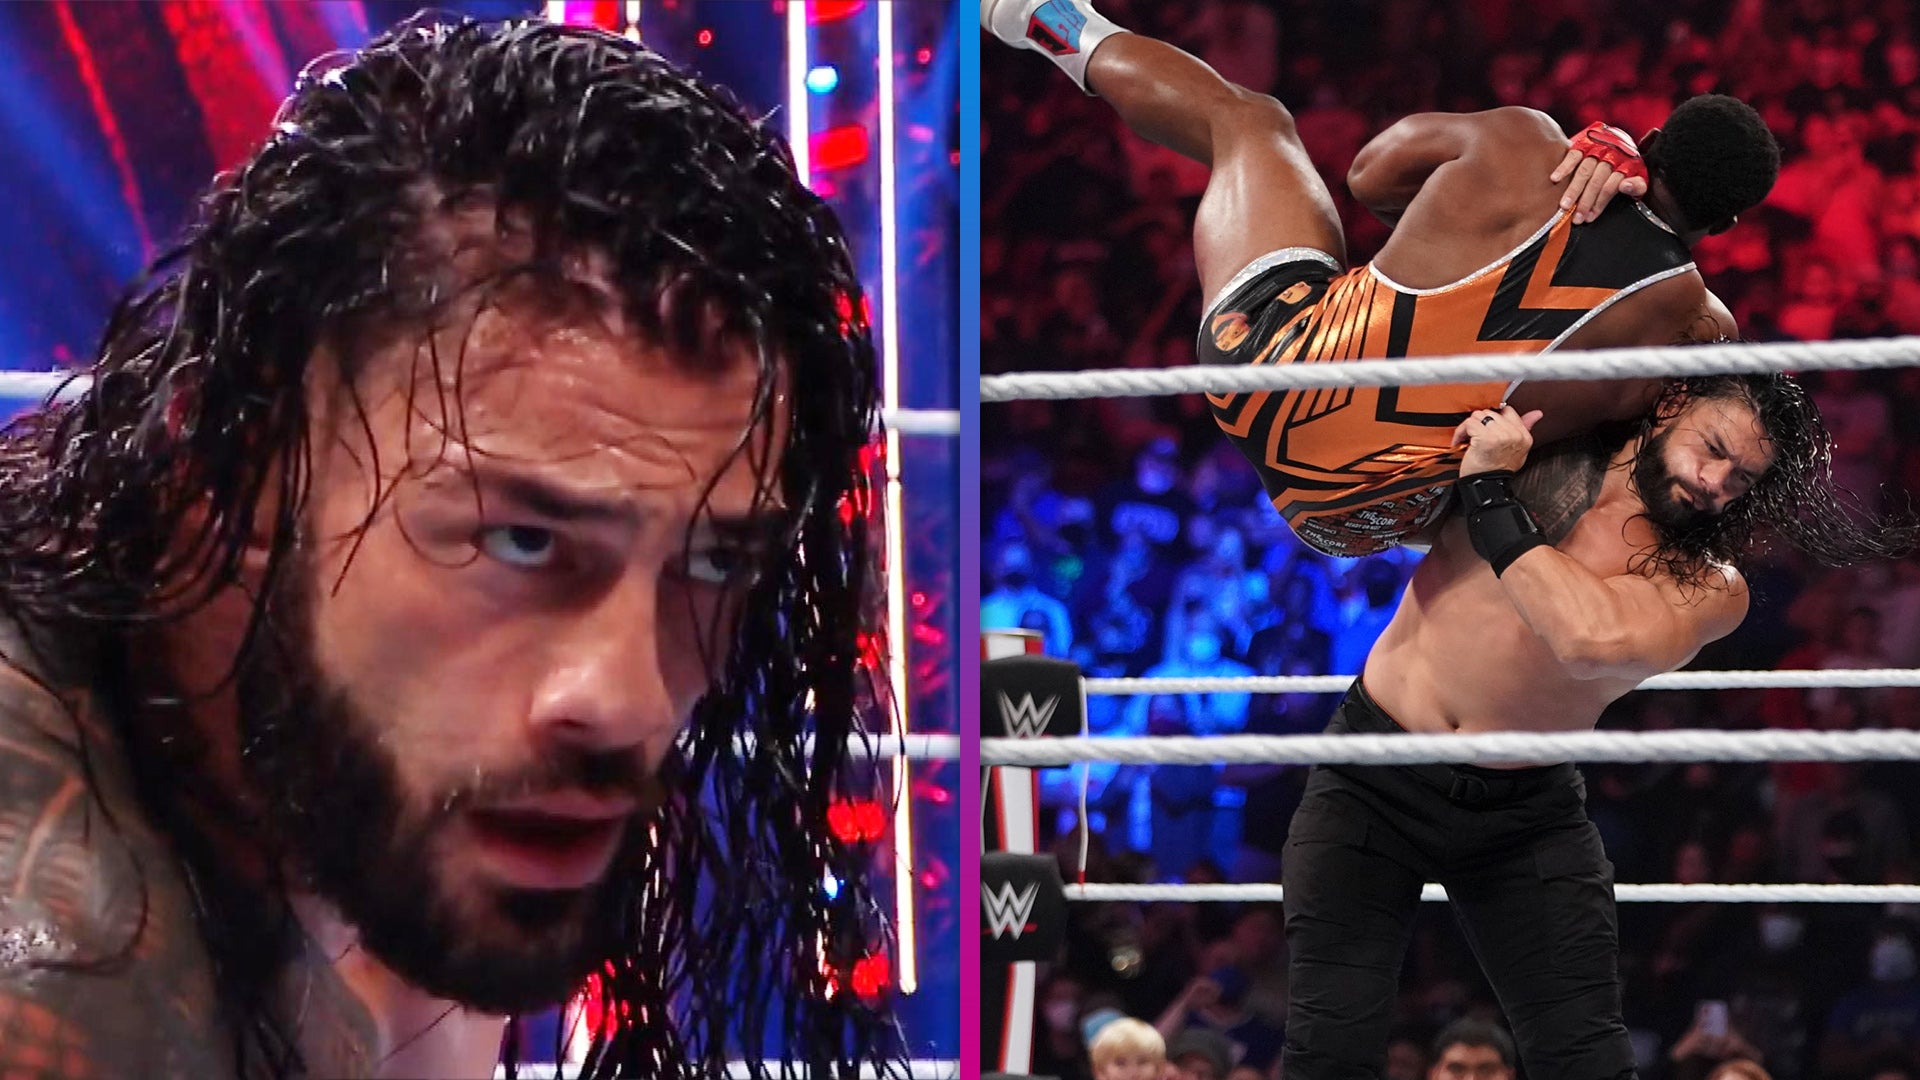 Roman Reigns Returns to 'WWE Raw' and Retains Universal Champion Title